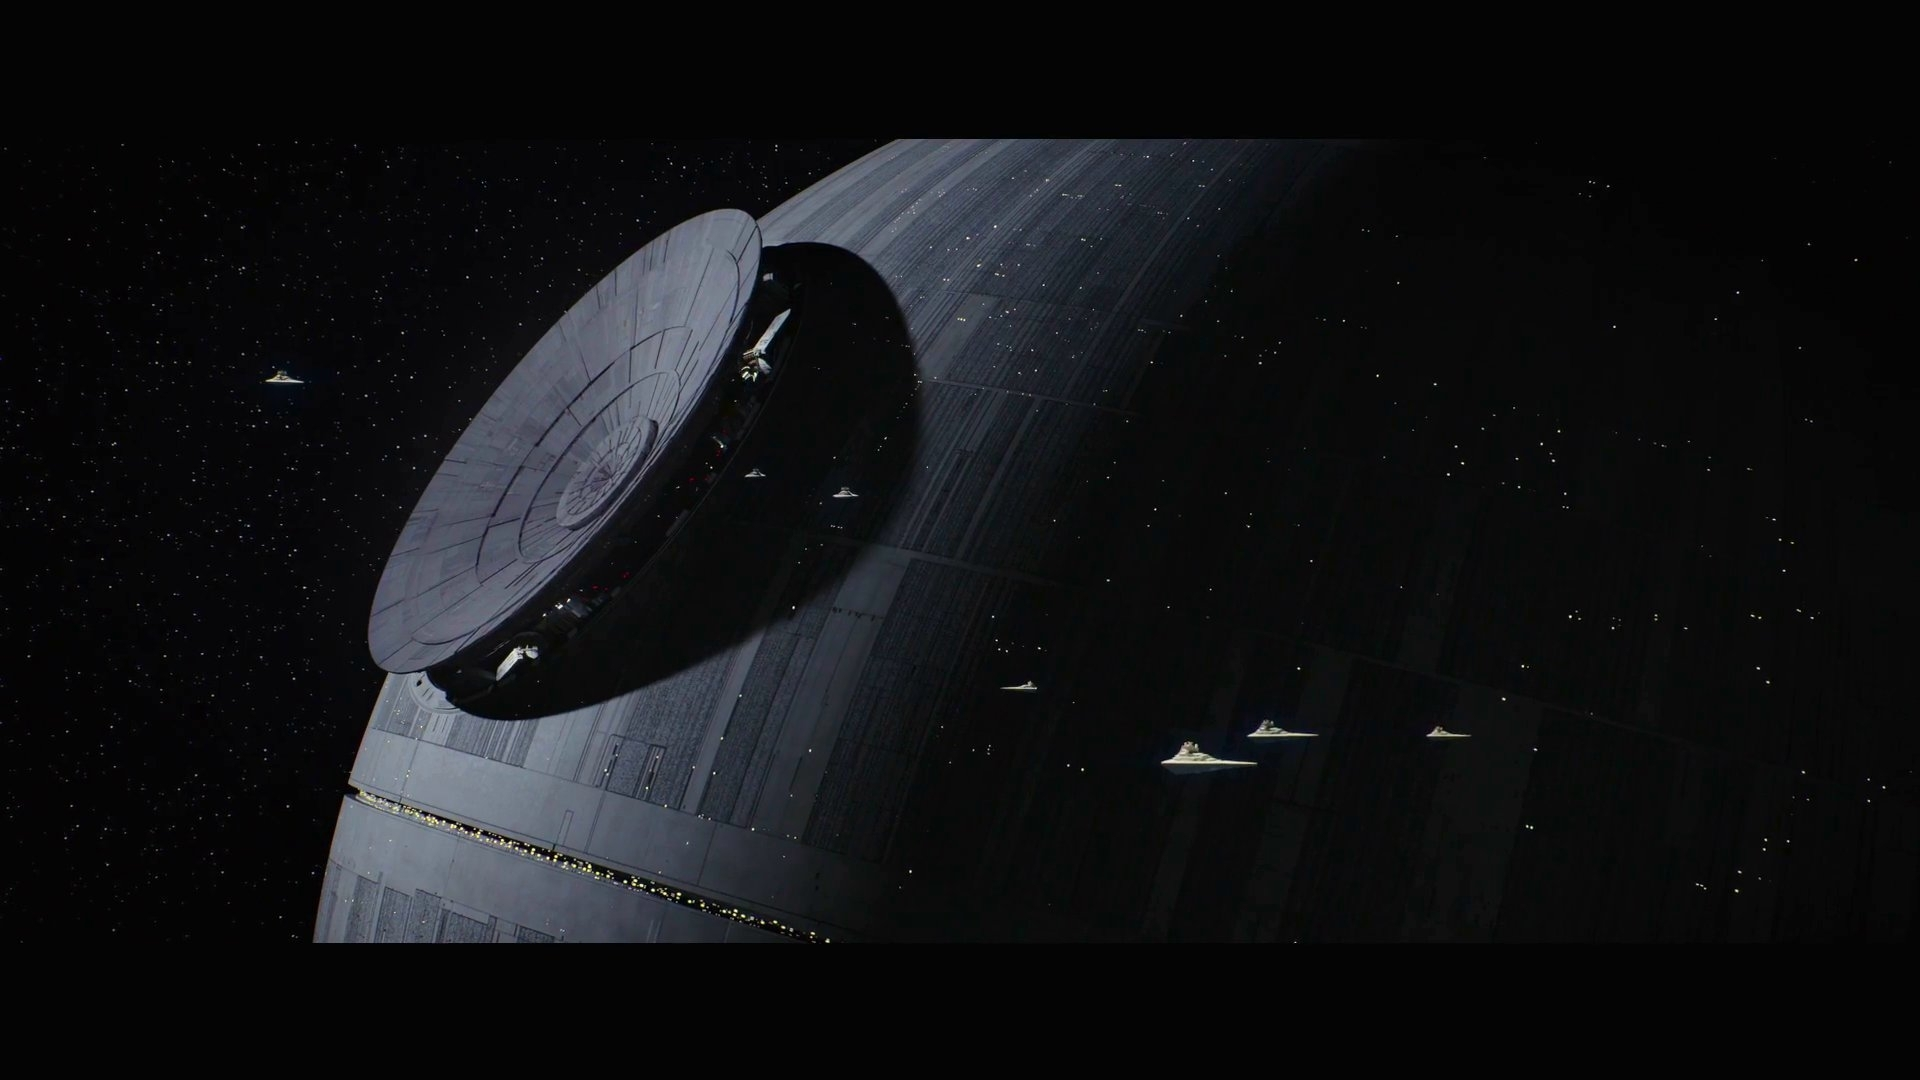 free-full-hd-death-star-wallpaper - wallpaper.wiki